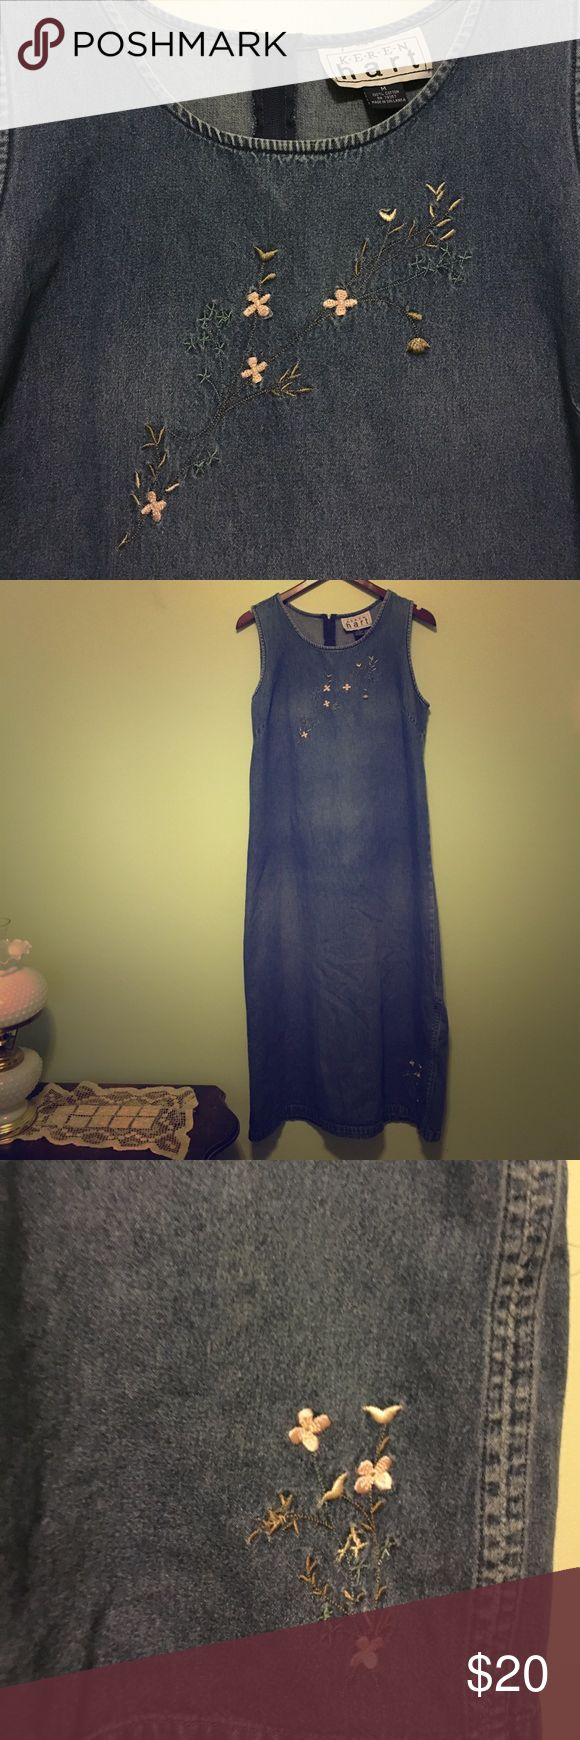 Vintage Denim dress Denim is faded throughout dress, as you can see in the picture, but the shape of the dress still holds keren hart Dresses Maxi